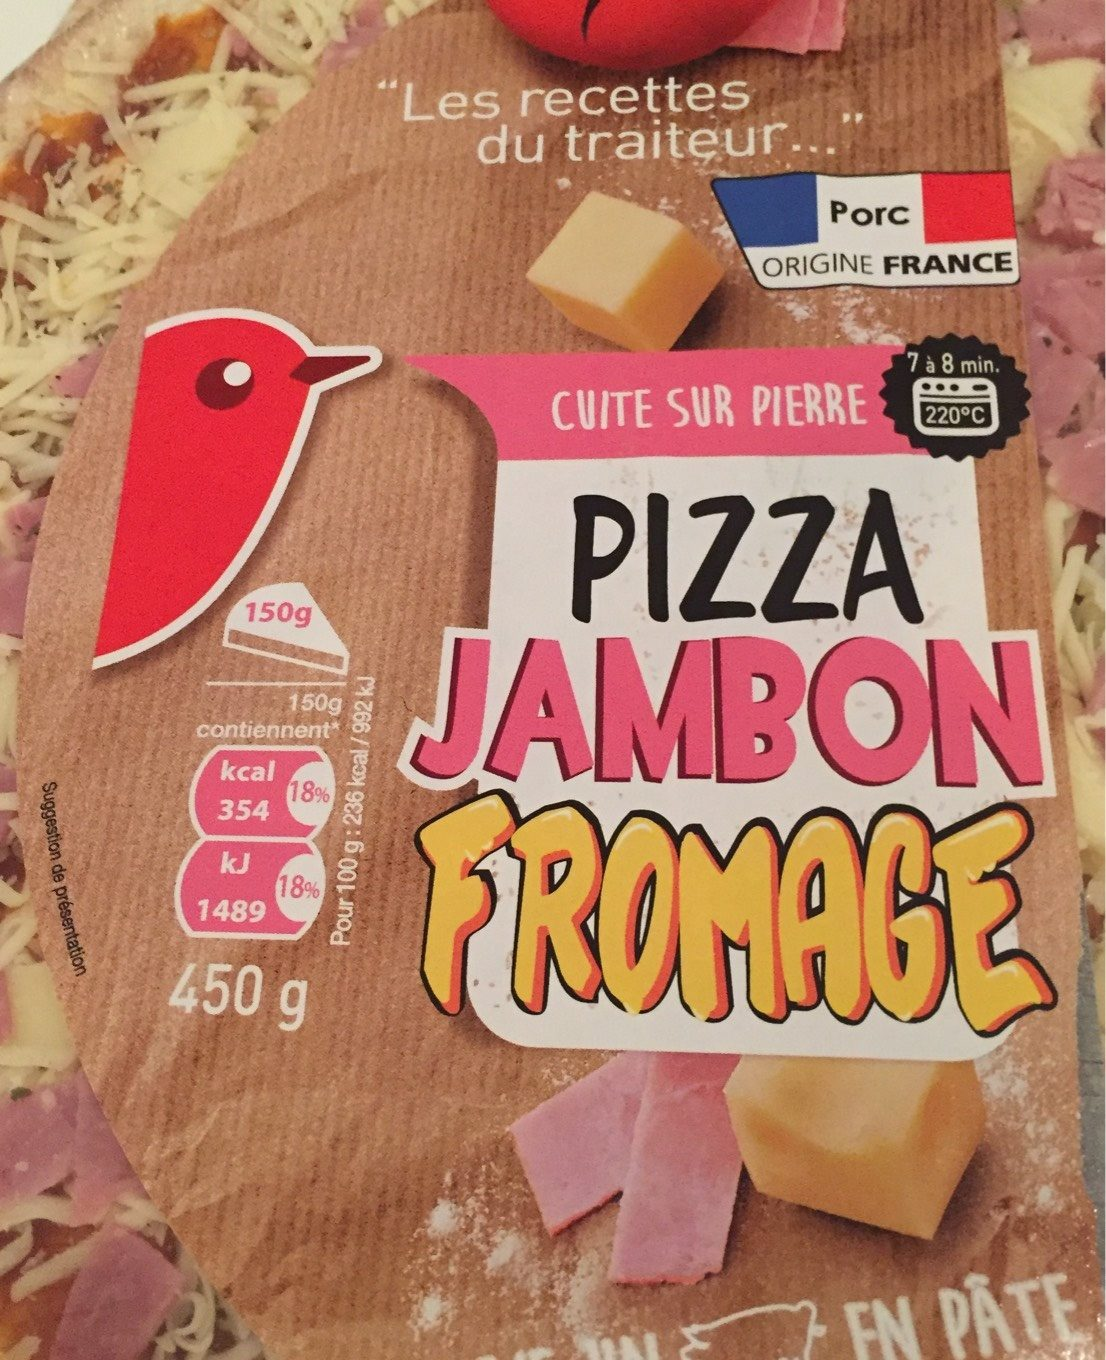 Pizza Jambon Fromage 450g Auchan - Product